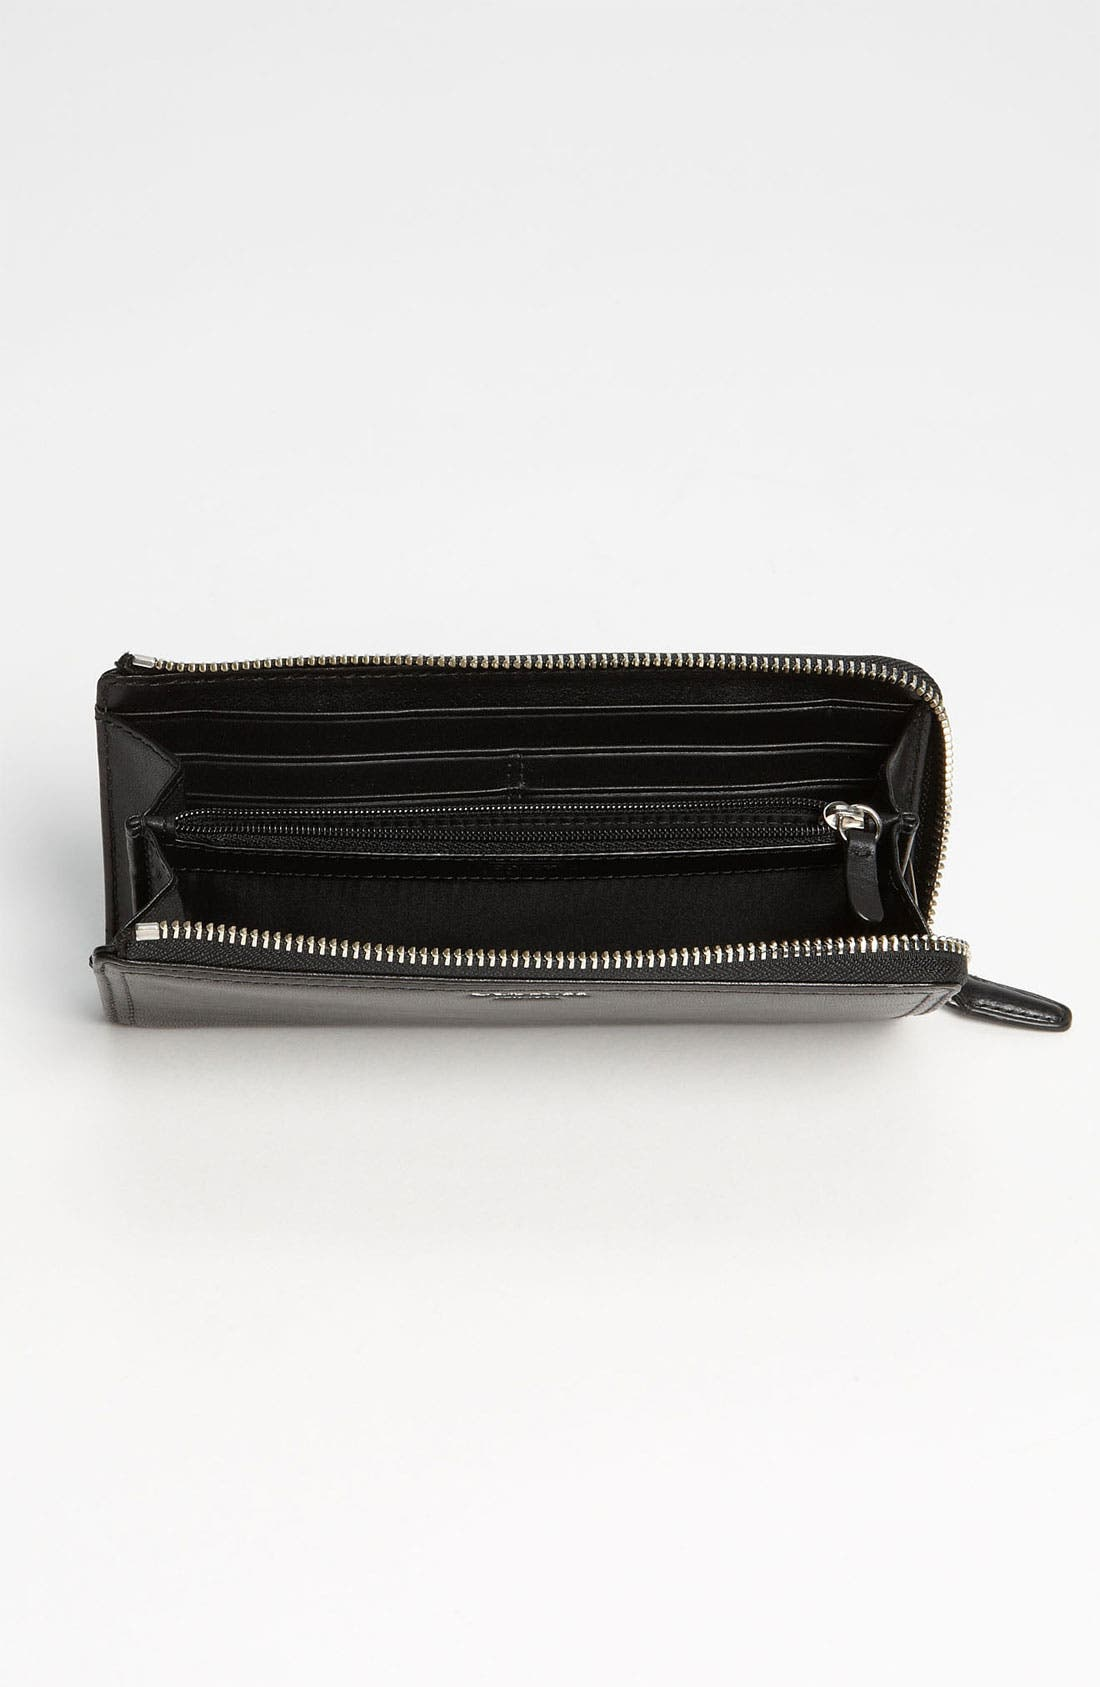 COACH,                             'Legacy' Leather Wallet,                             Alternate thumbnail 2, color,                             001